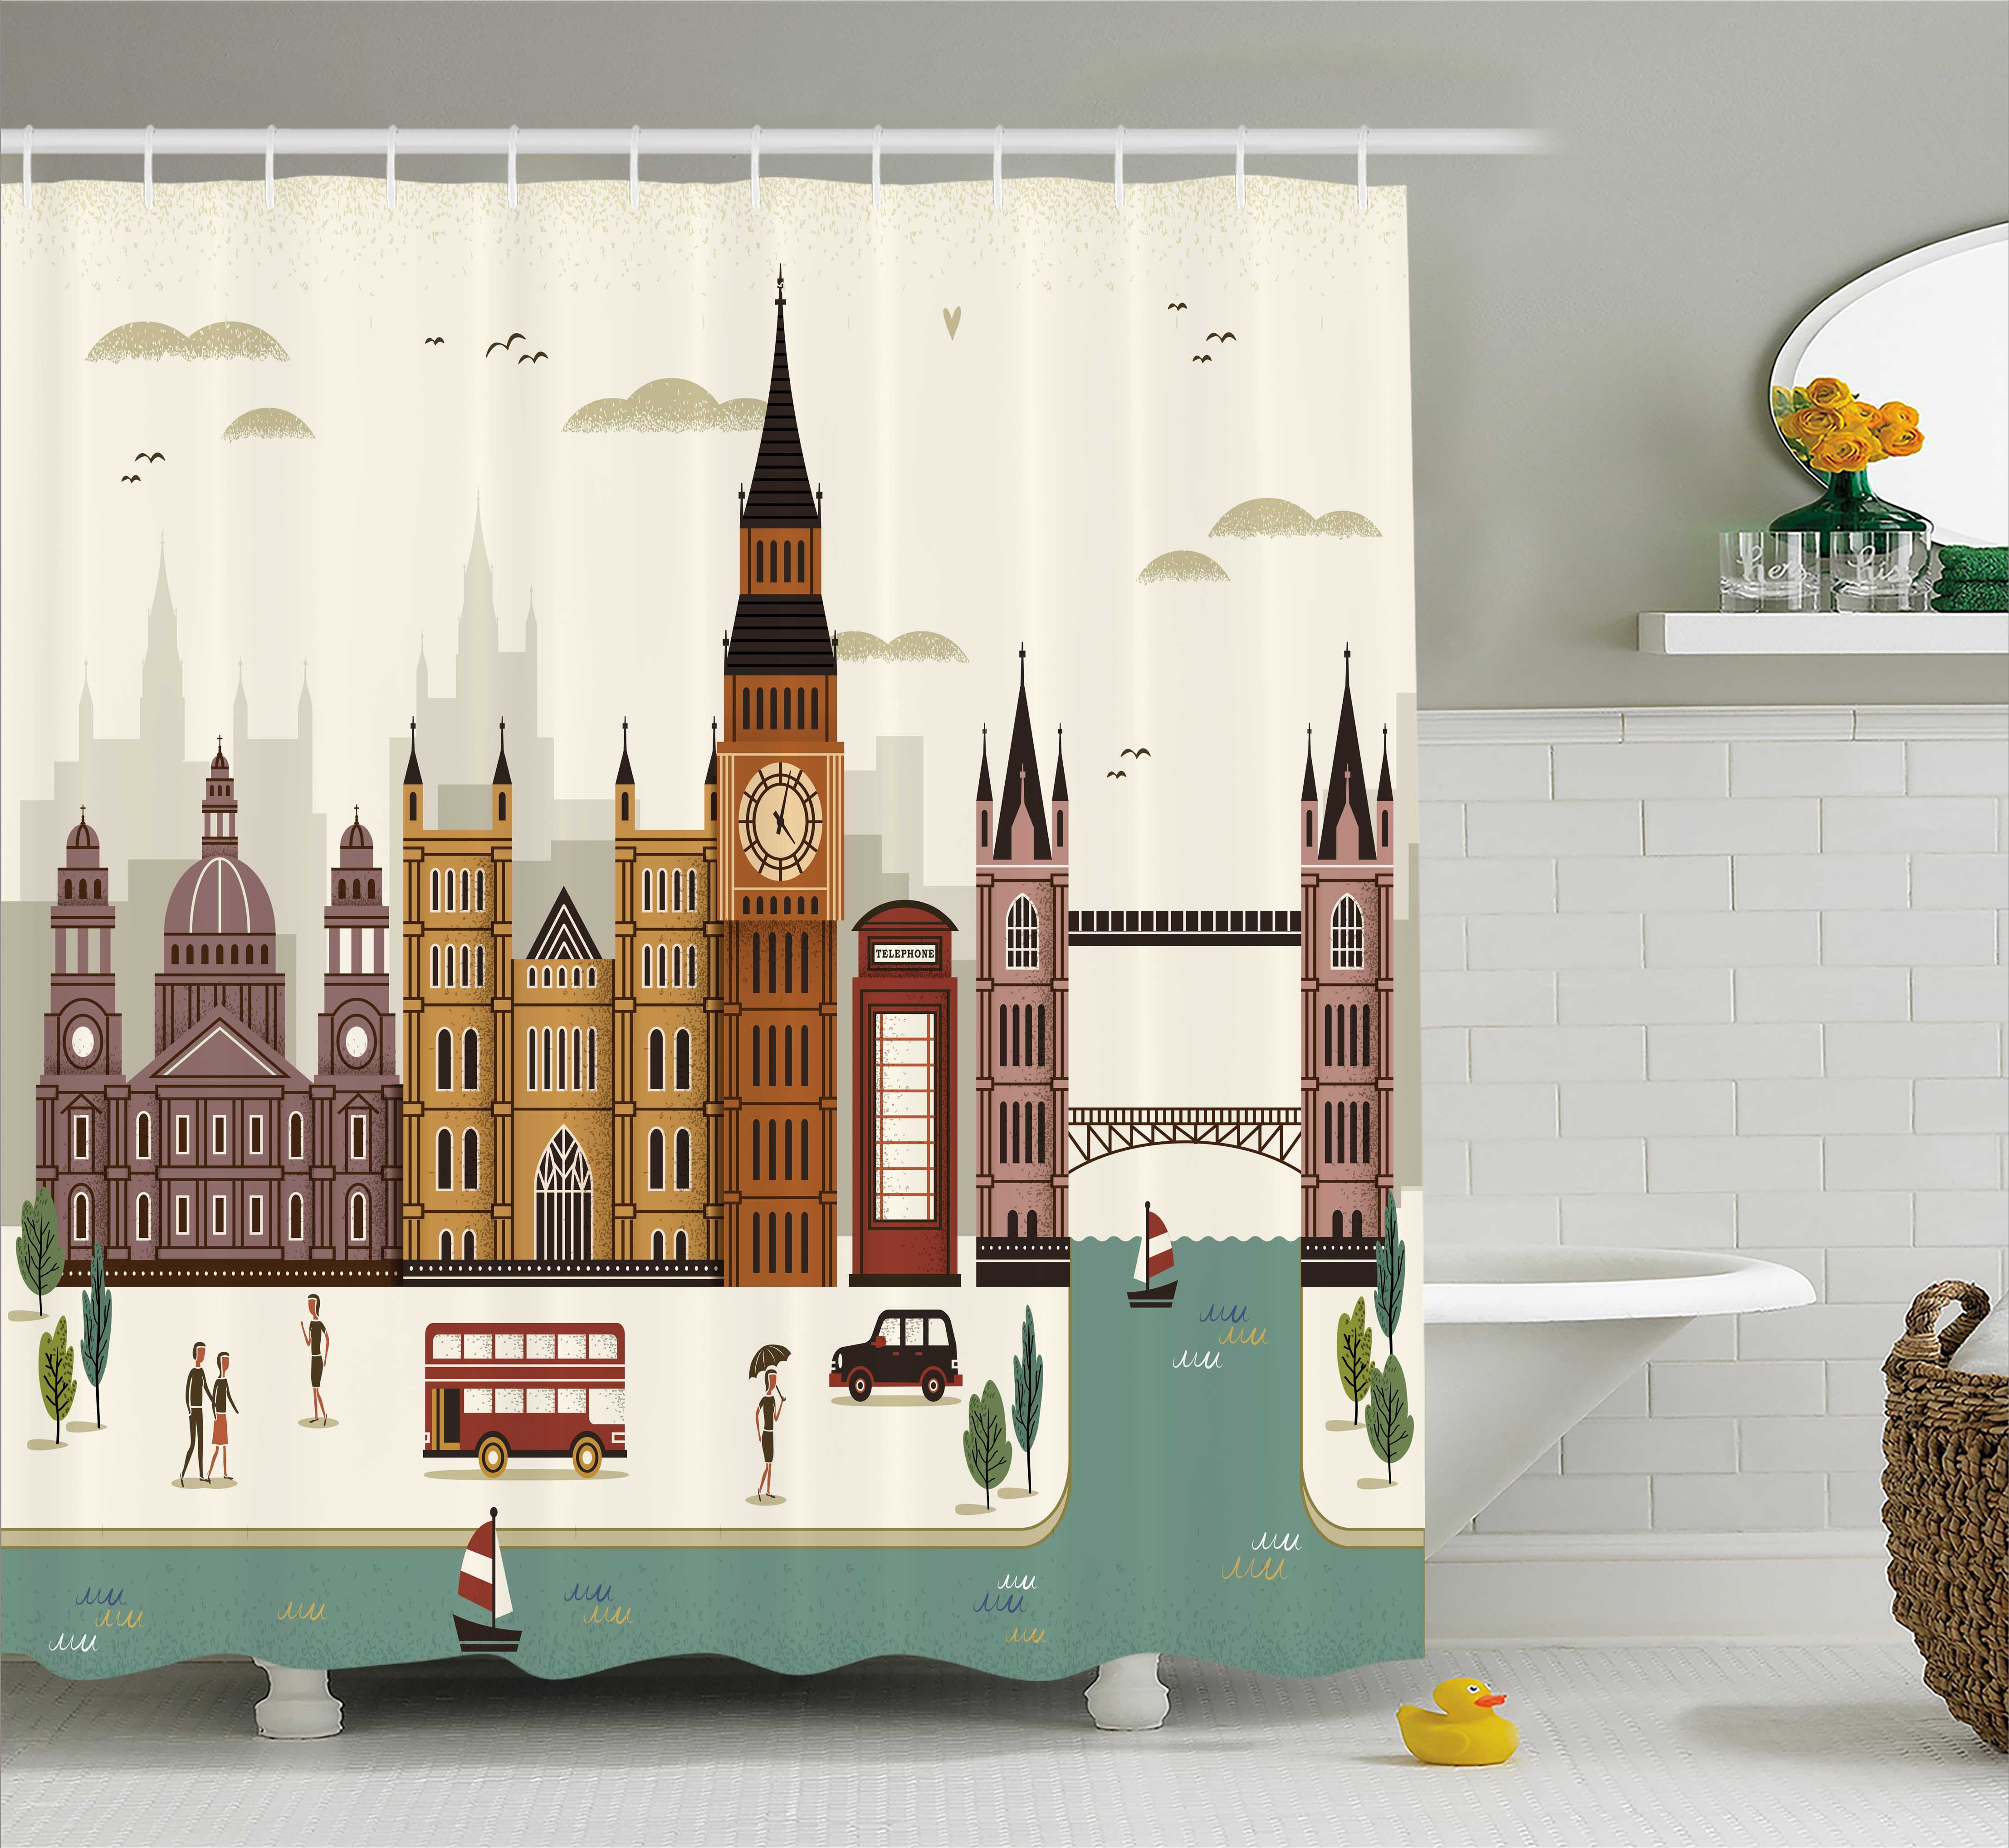 London Shower Curtain, Attractive Travel Scenery Famous City England Big Ben Telephone Booth Westminster, Fabric Bathroom Set with Hooks, 69W X 75L Inches Long, Multicolor, by Ambesonne